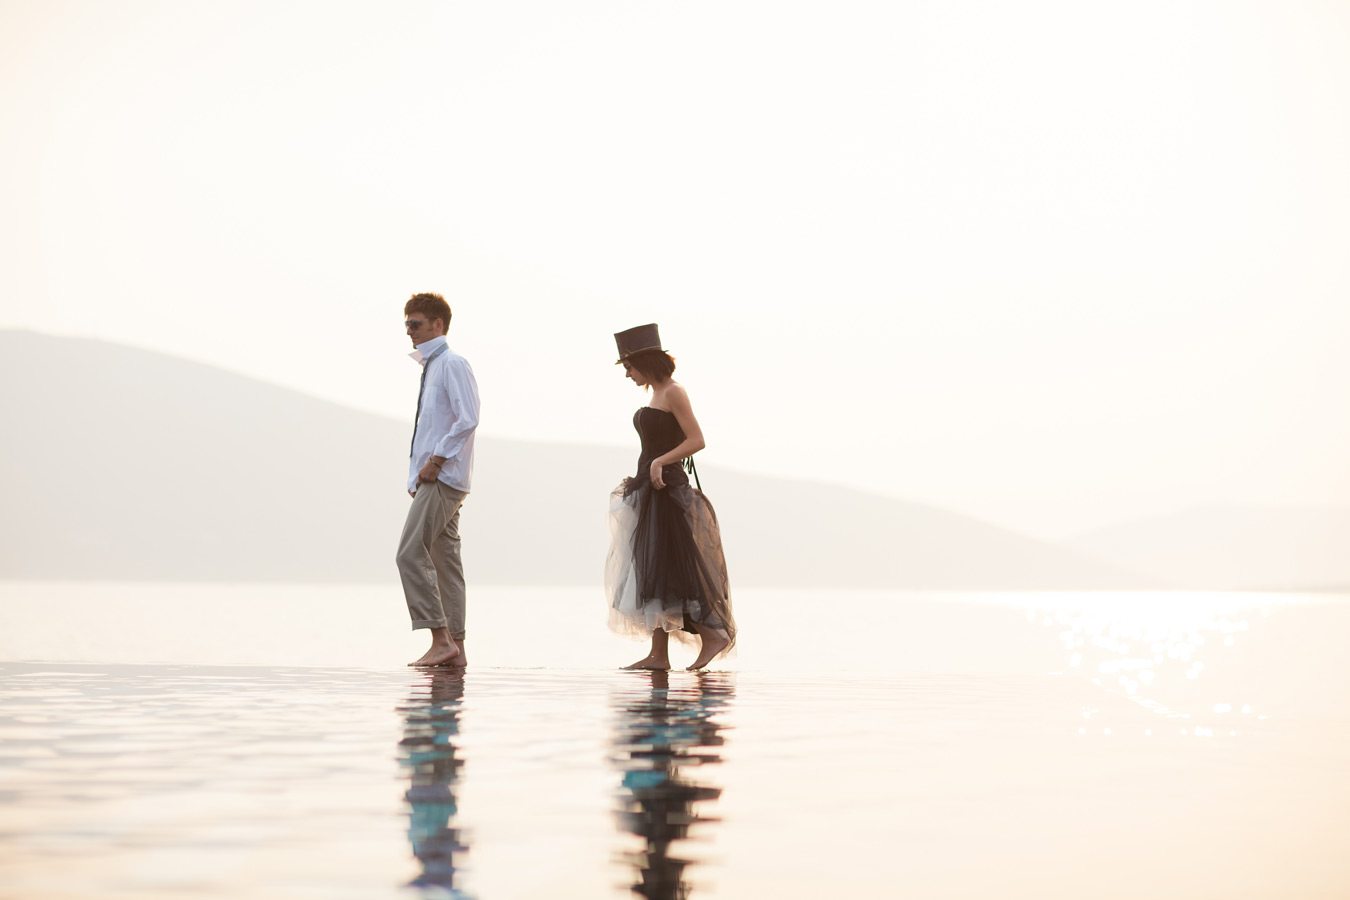 One of a set of images taken at Vanessa and Thor's destination Wedding in Porto Montenegro.Infinity pool image of bride and groom at Montenegro Lido.Wedding Photography By Matt Porteous